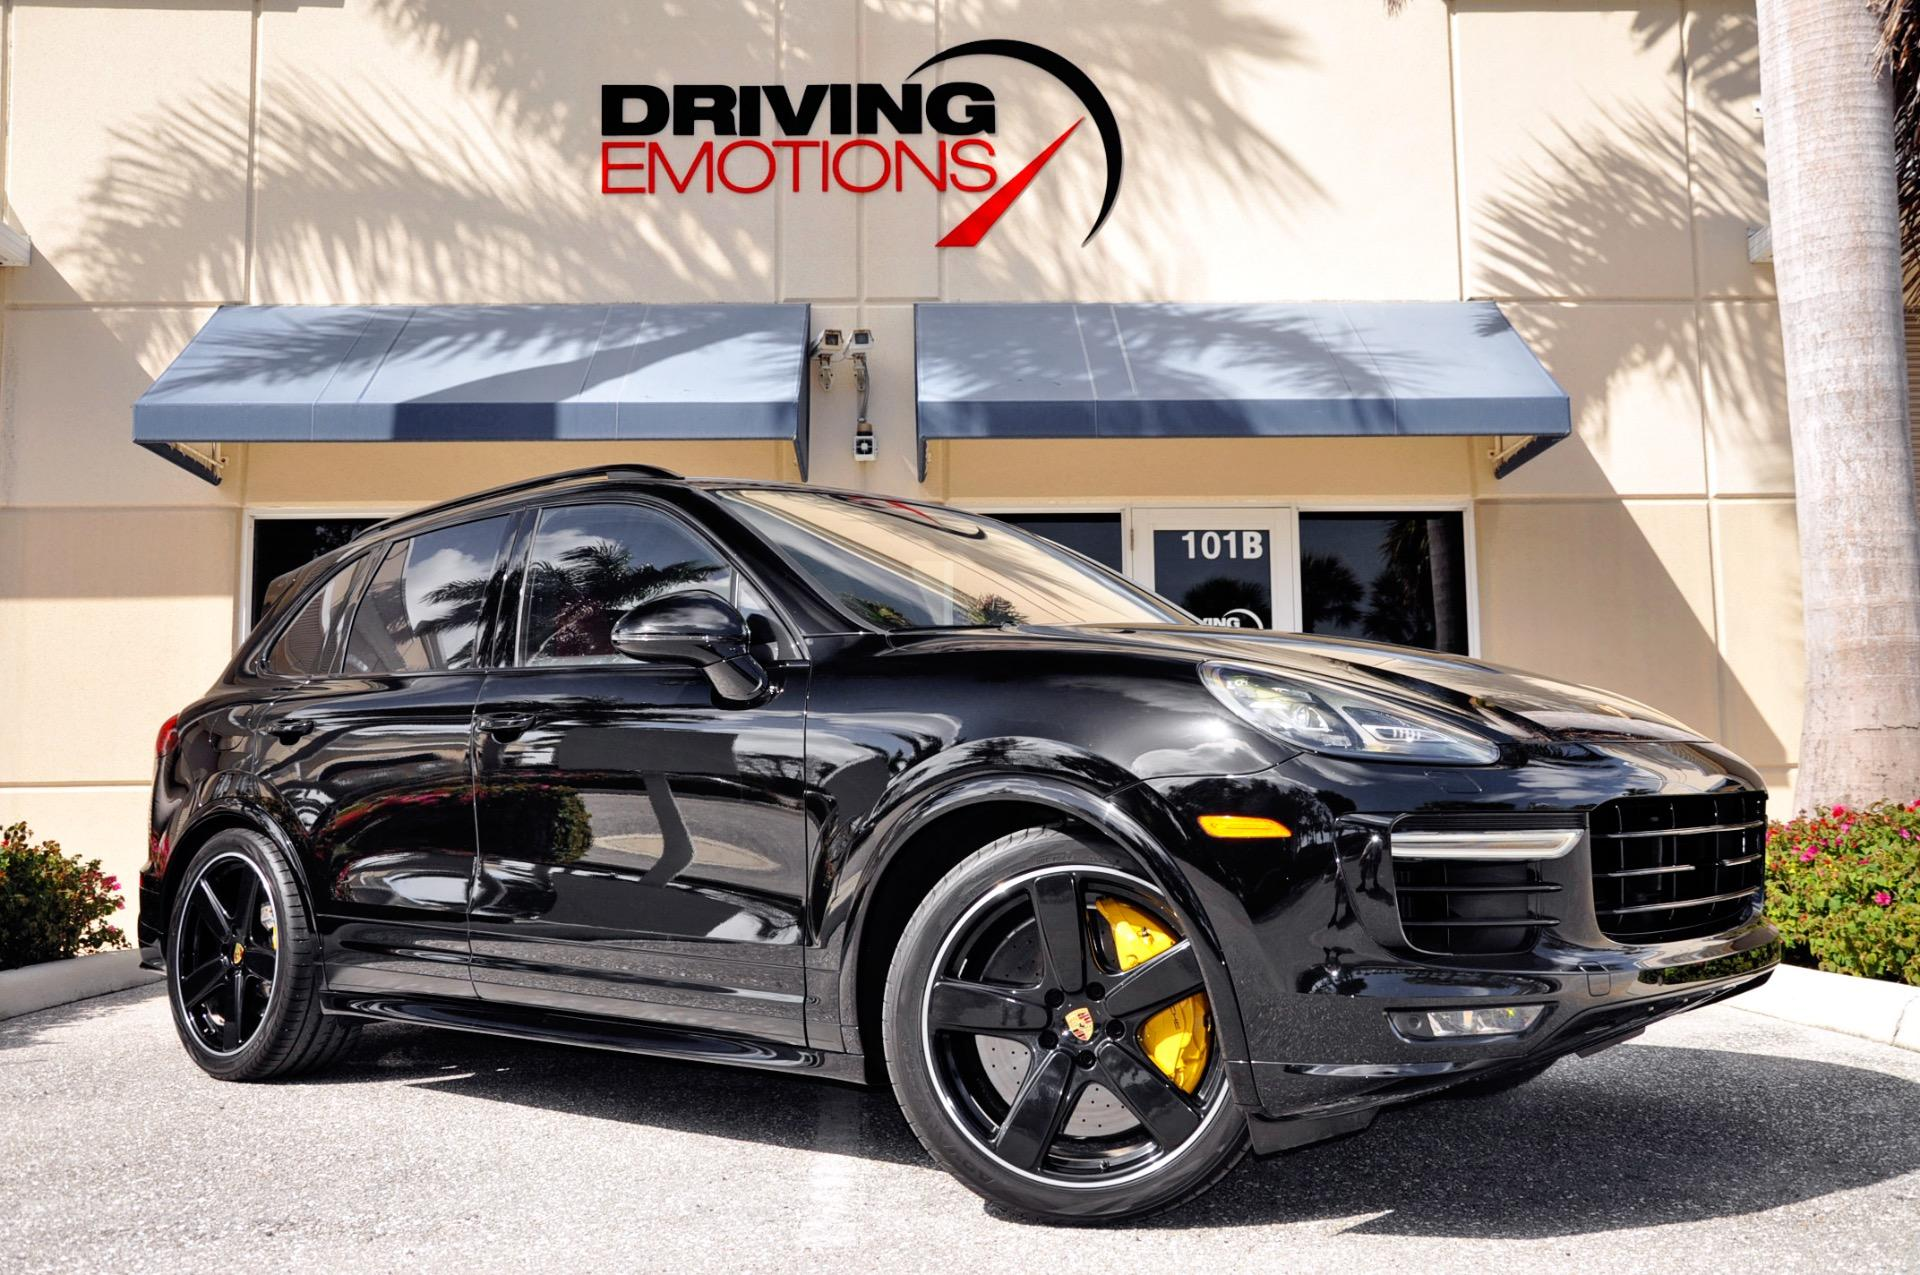 2016 porsche cayenne turbo s turbo s stock # 5999 for sale near lake